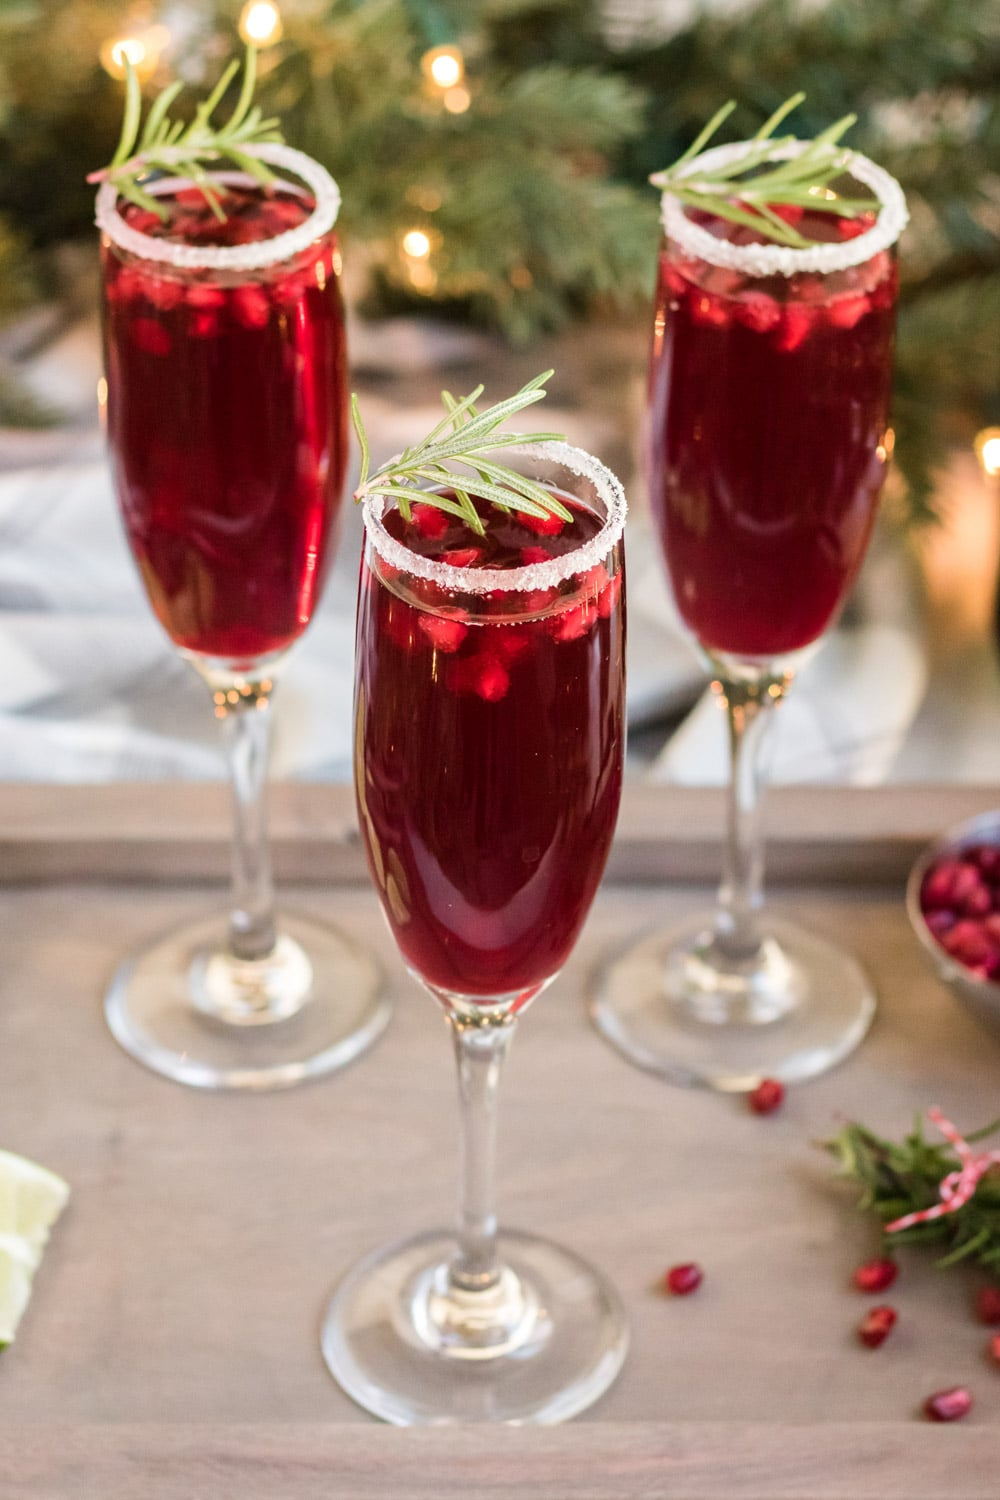 Three champagne flutes with pomegranate mimosa inside. They are garnished with sugar and rosemary.